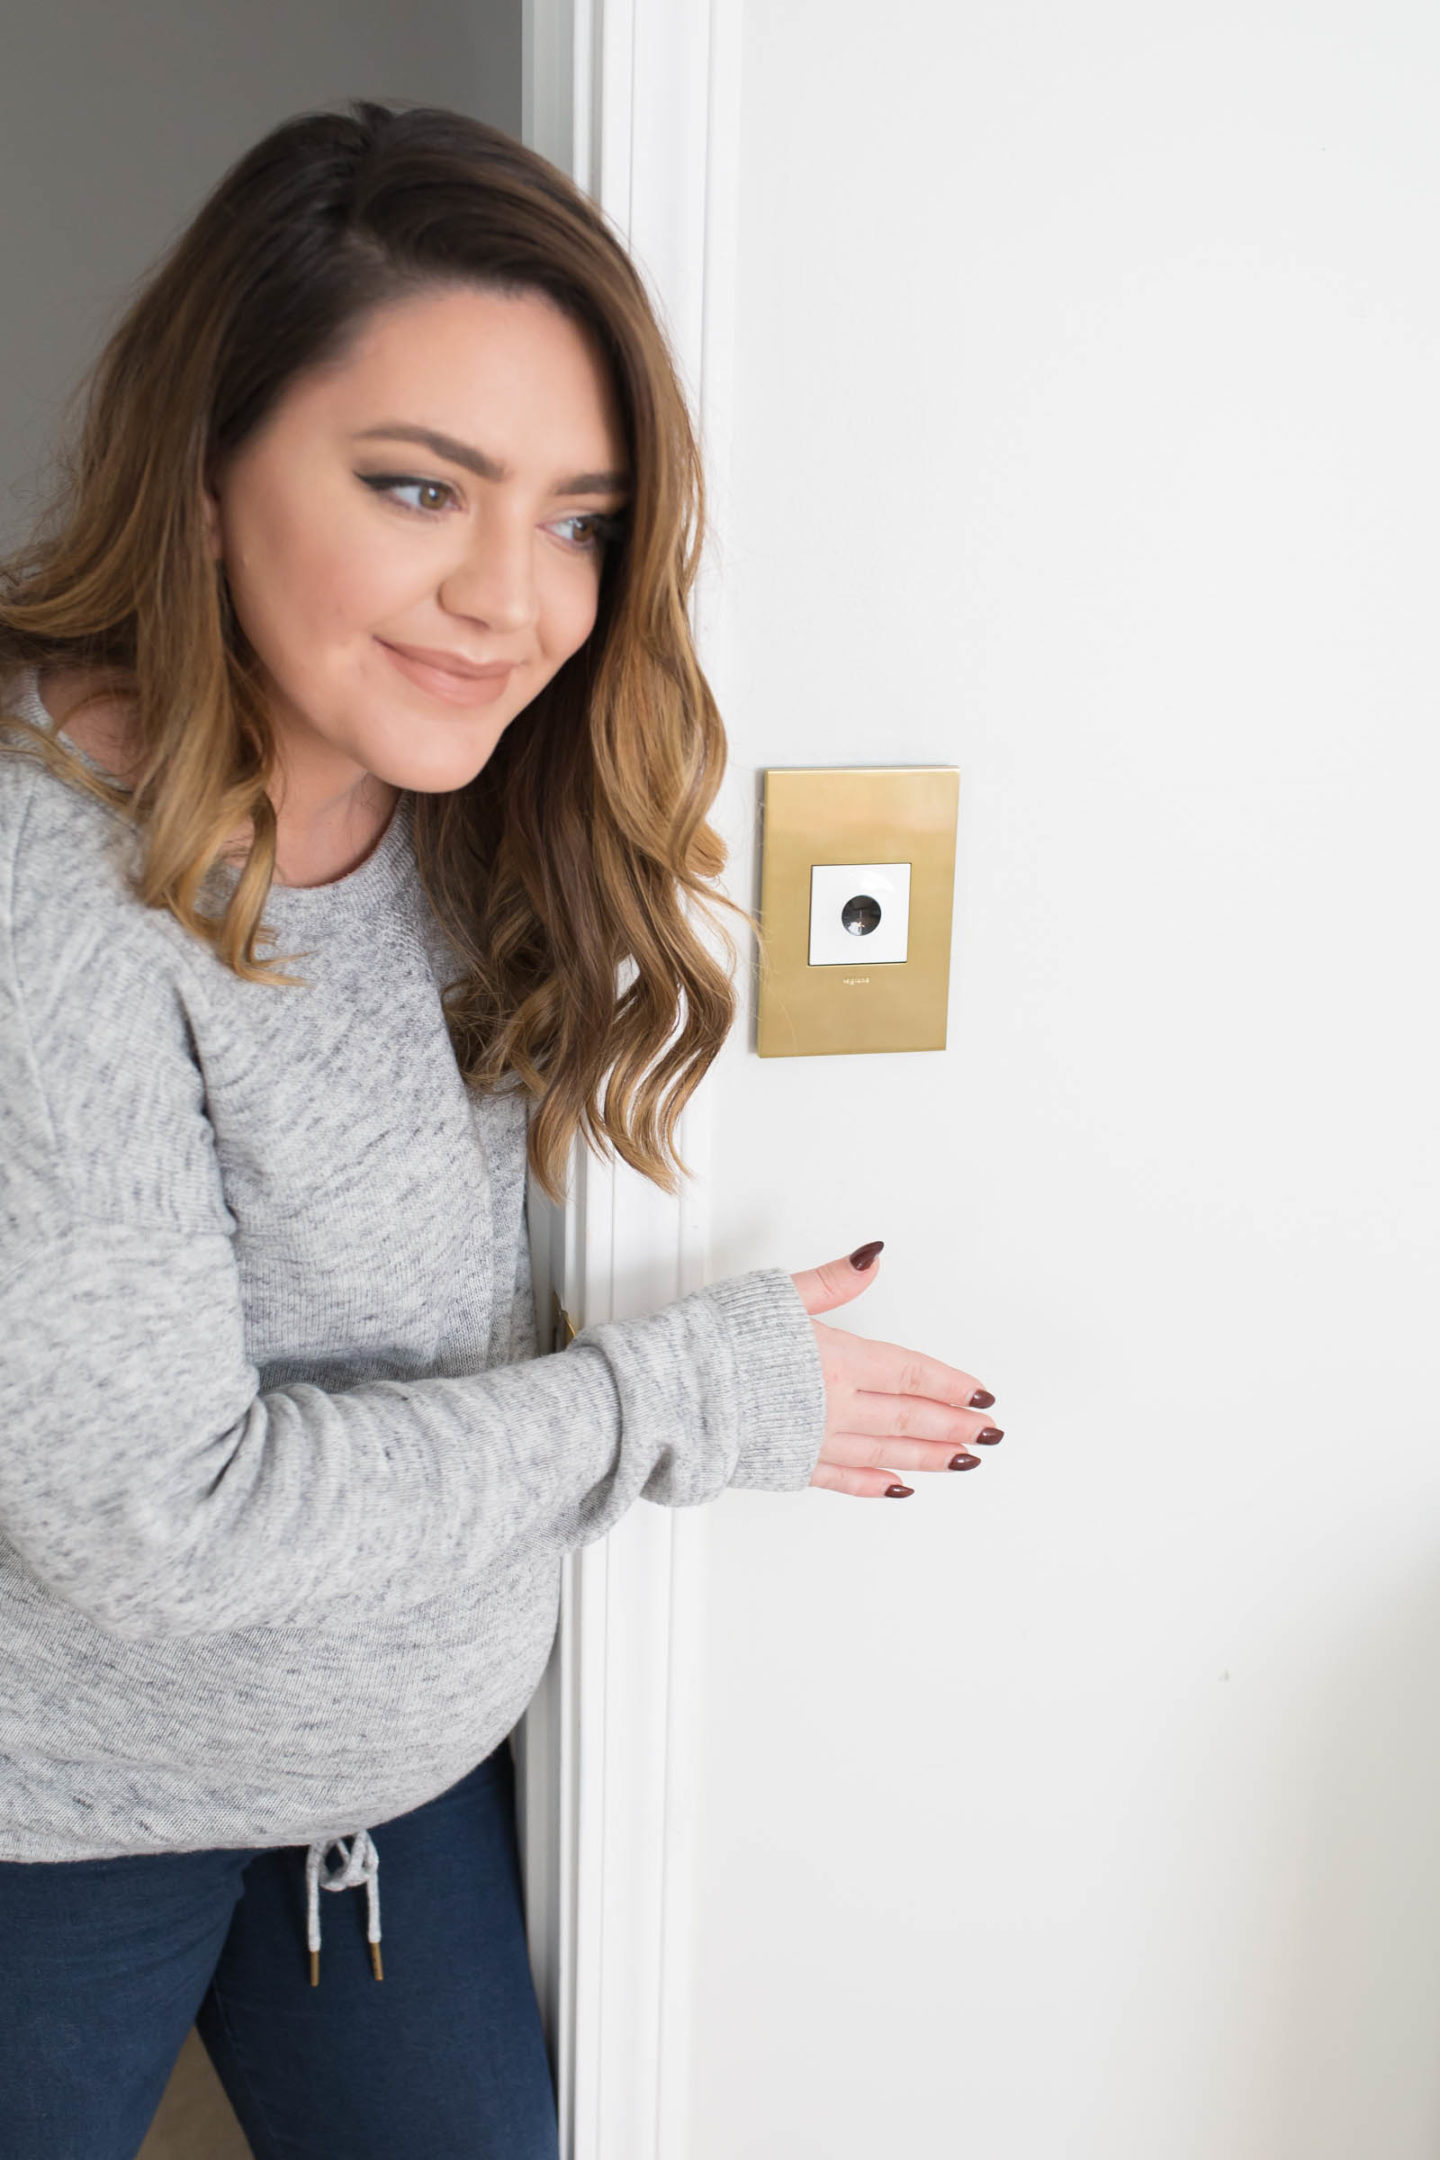 Nursery Finishing Touches with Legrand Adorne Collection   Brushed Brass Wall Plate   Wi-FI Outlet   USB Outlet   Innovative Lighting Controls & Charging Solutions   via @maeamor